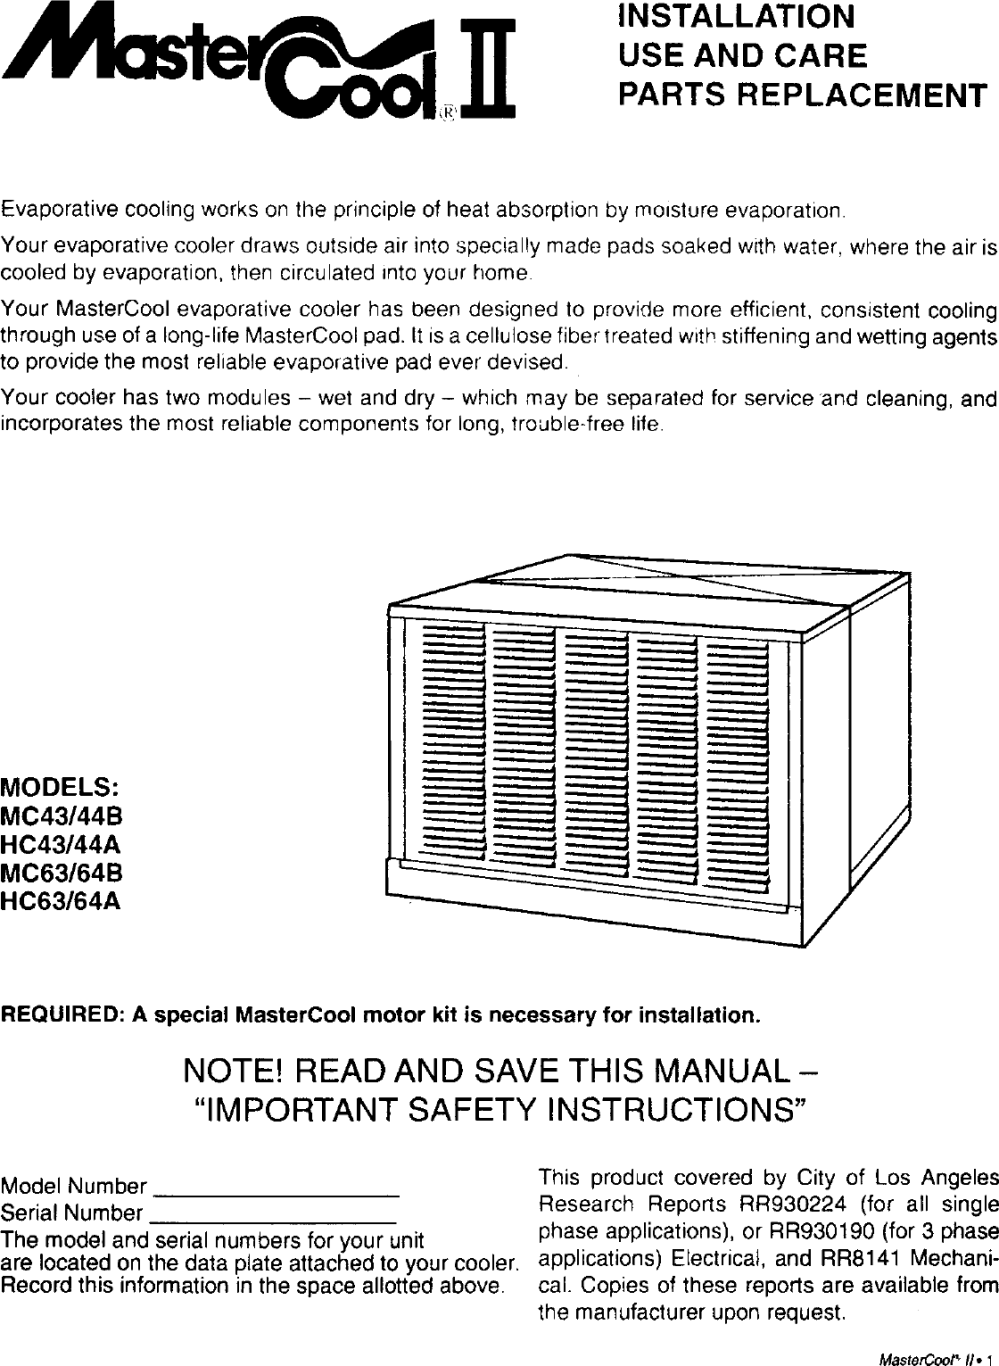 medium resolution of mastercool thermostat wiring diagram